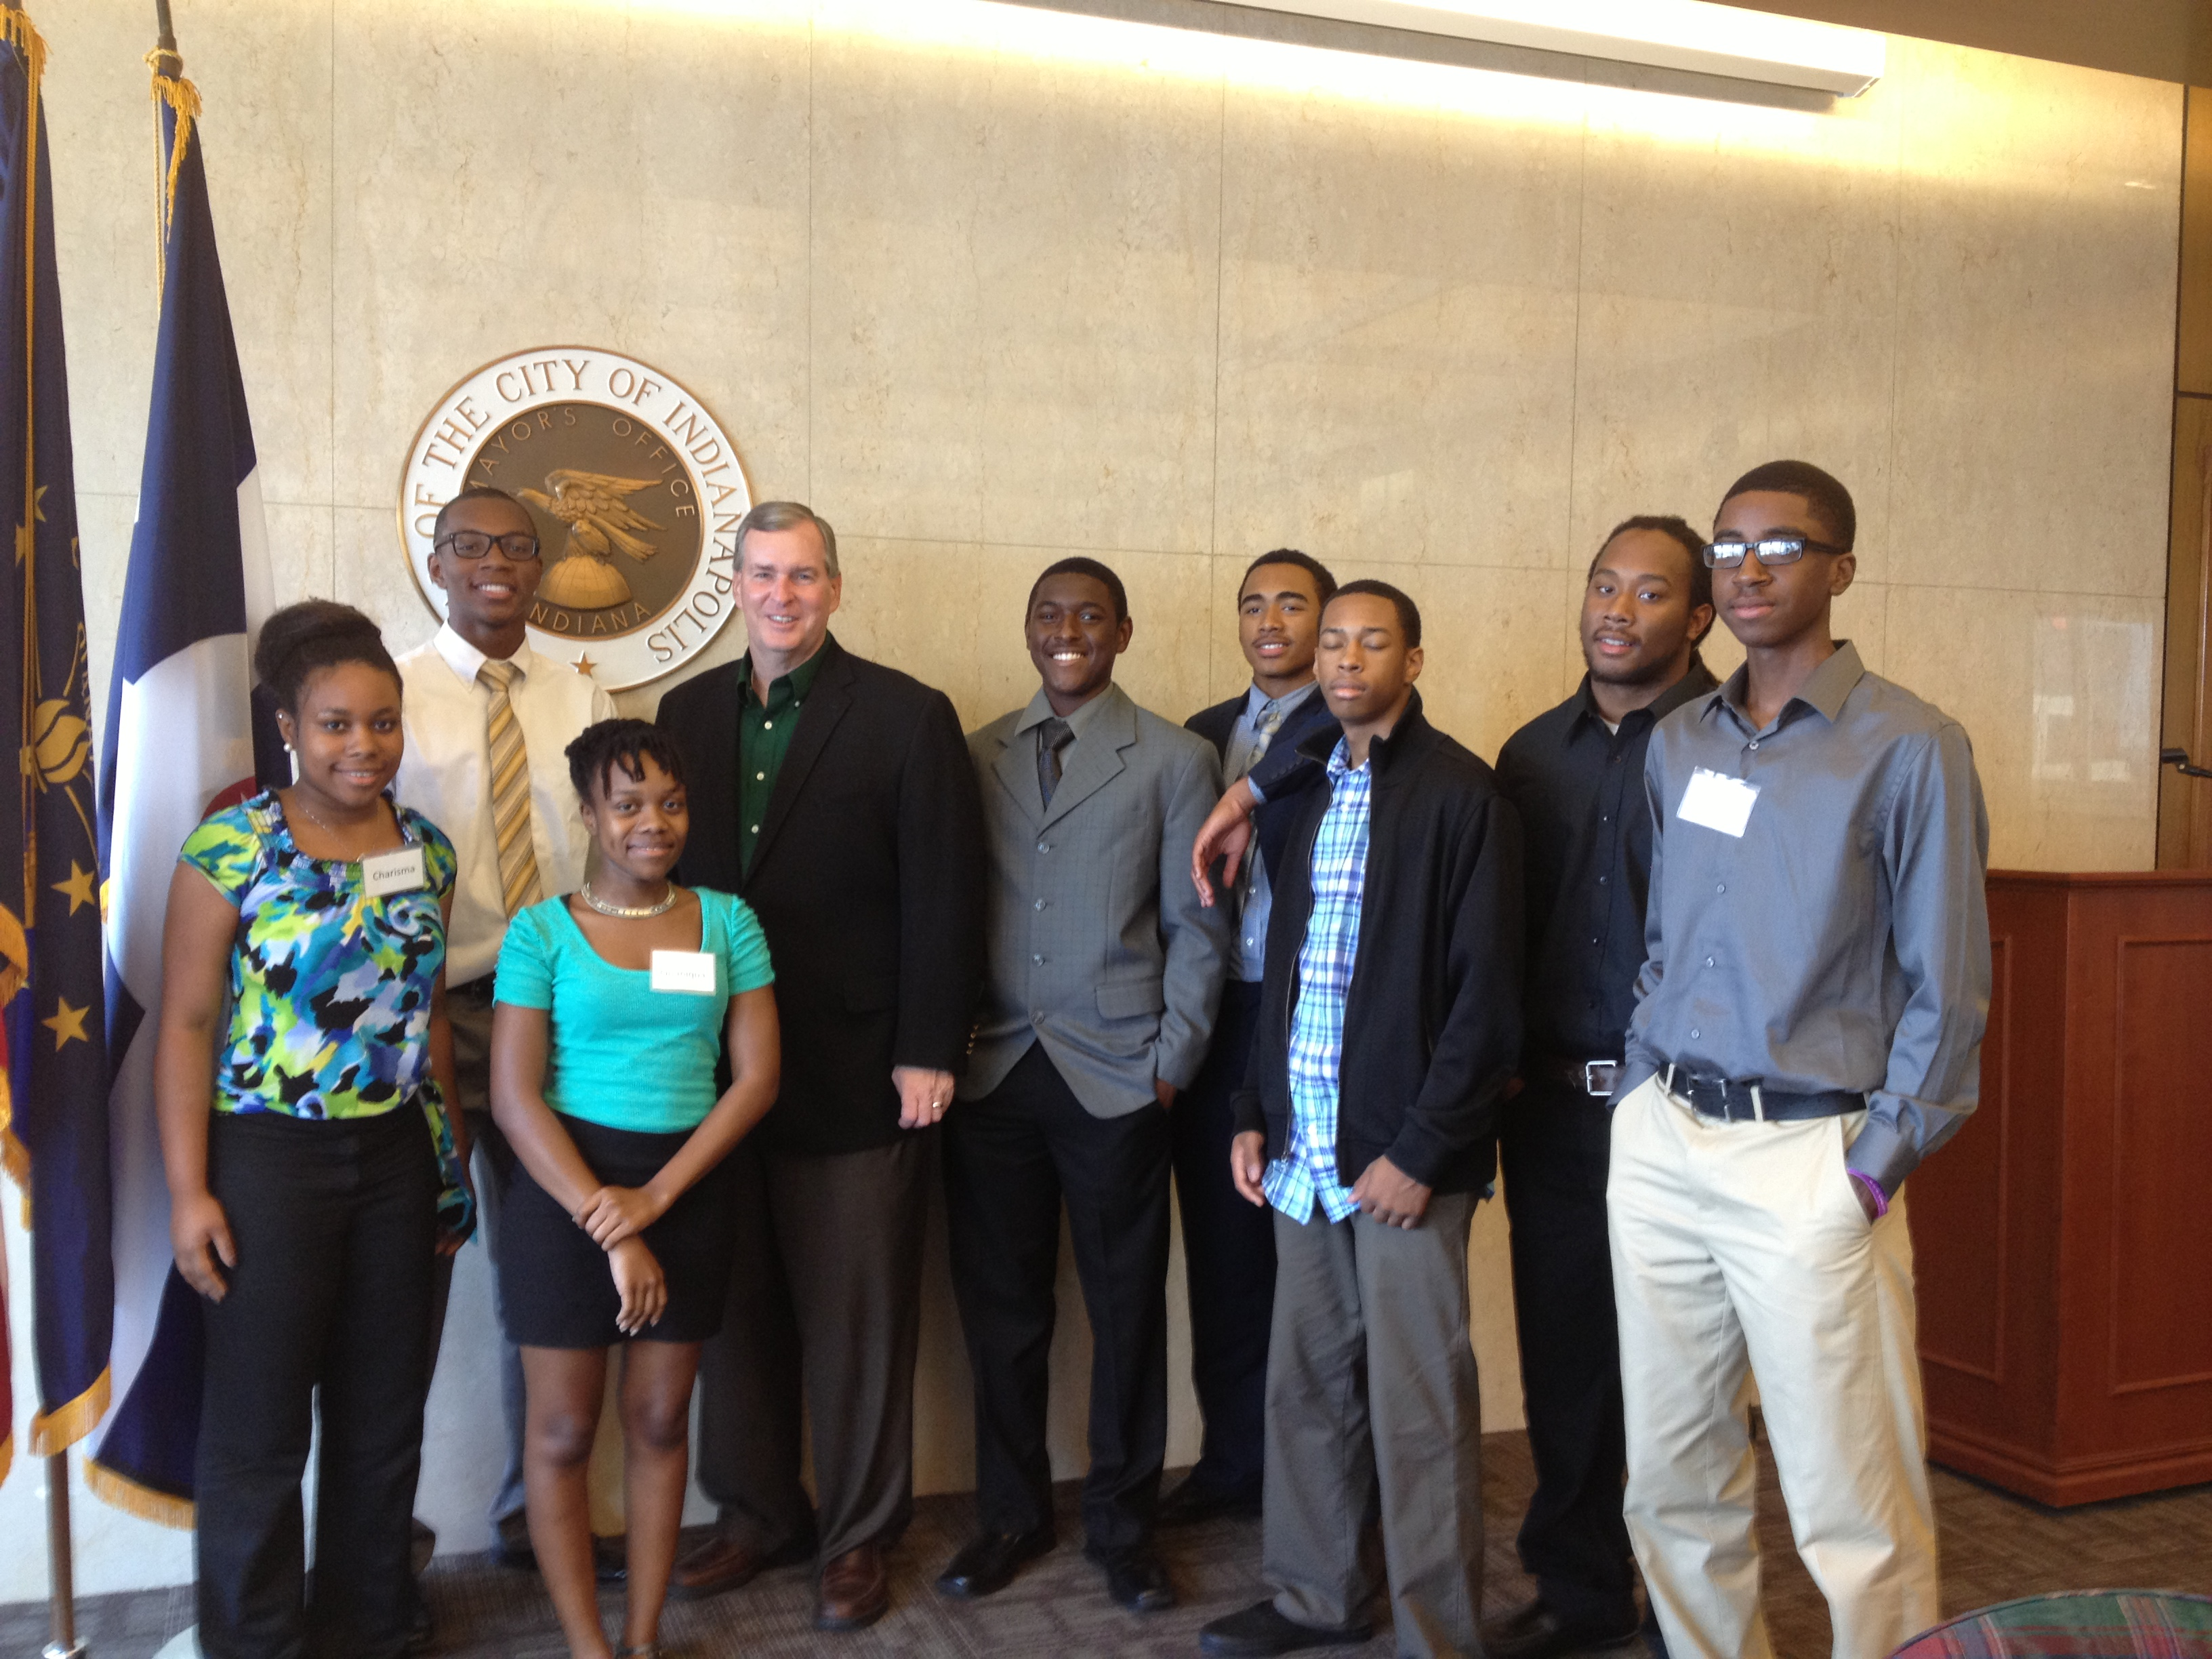 Indianapolis Mayor Greg Ballard and the participants of DirectEmployers Youth Enhancement Summer Program 2013